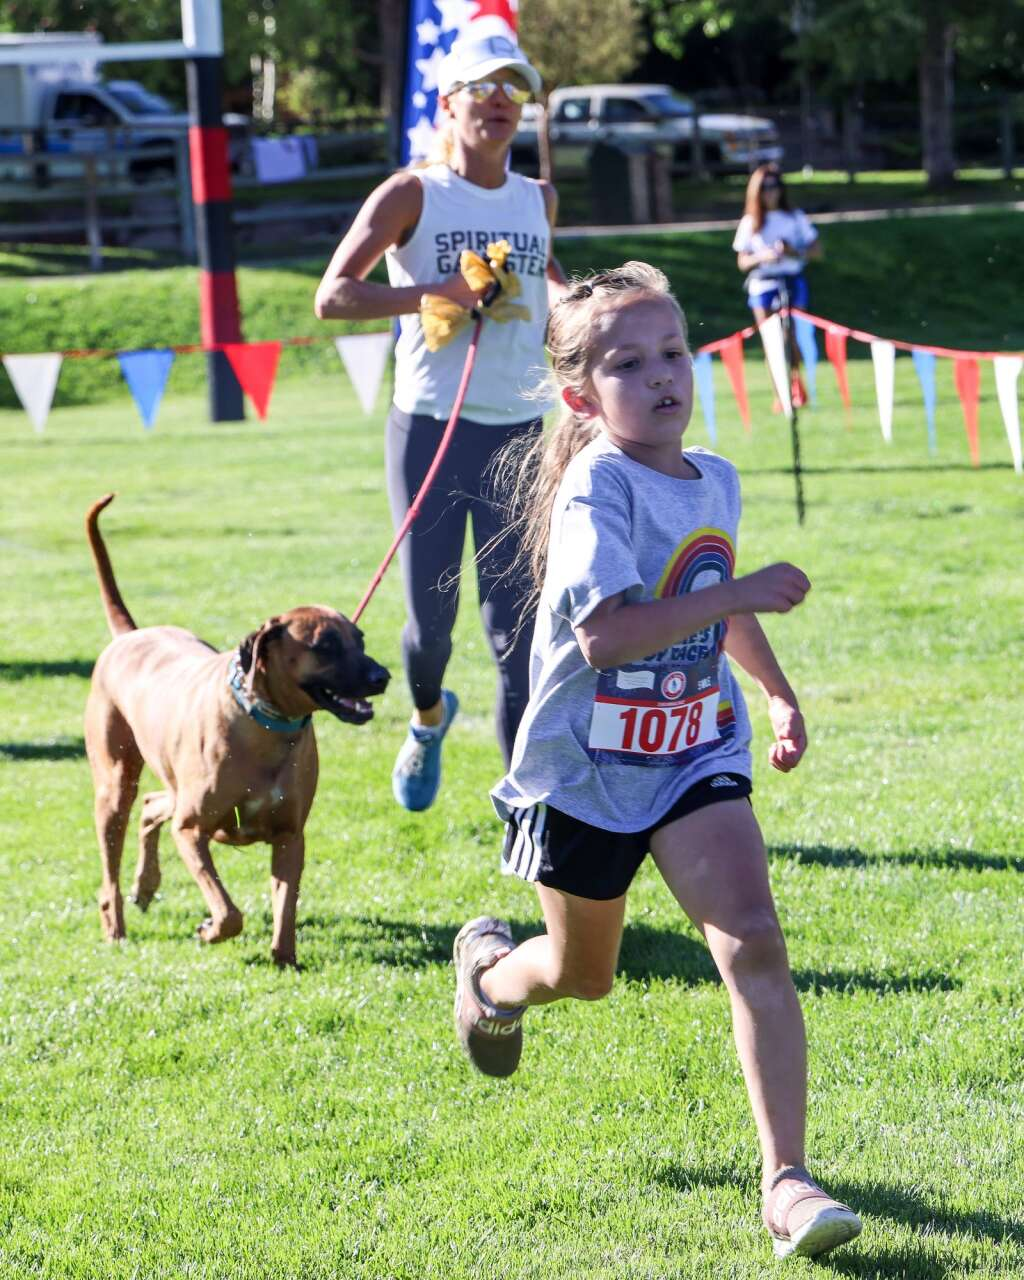 Racers take part in the Boogie's Buddy Race on Sunday, July 4, 2021, at Rio Grande Park in Aspen. Photo by Austin Colbert/The Aspen Times.